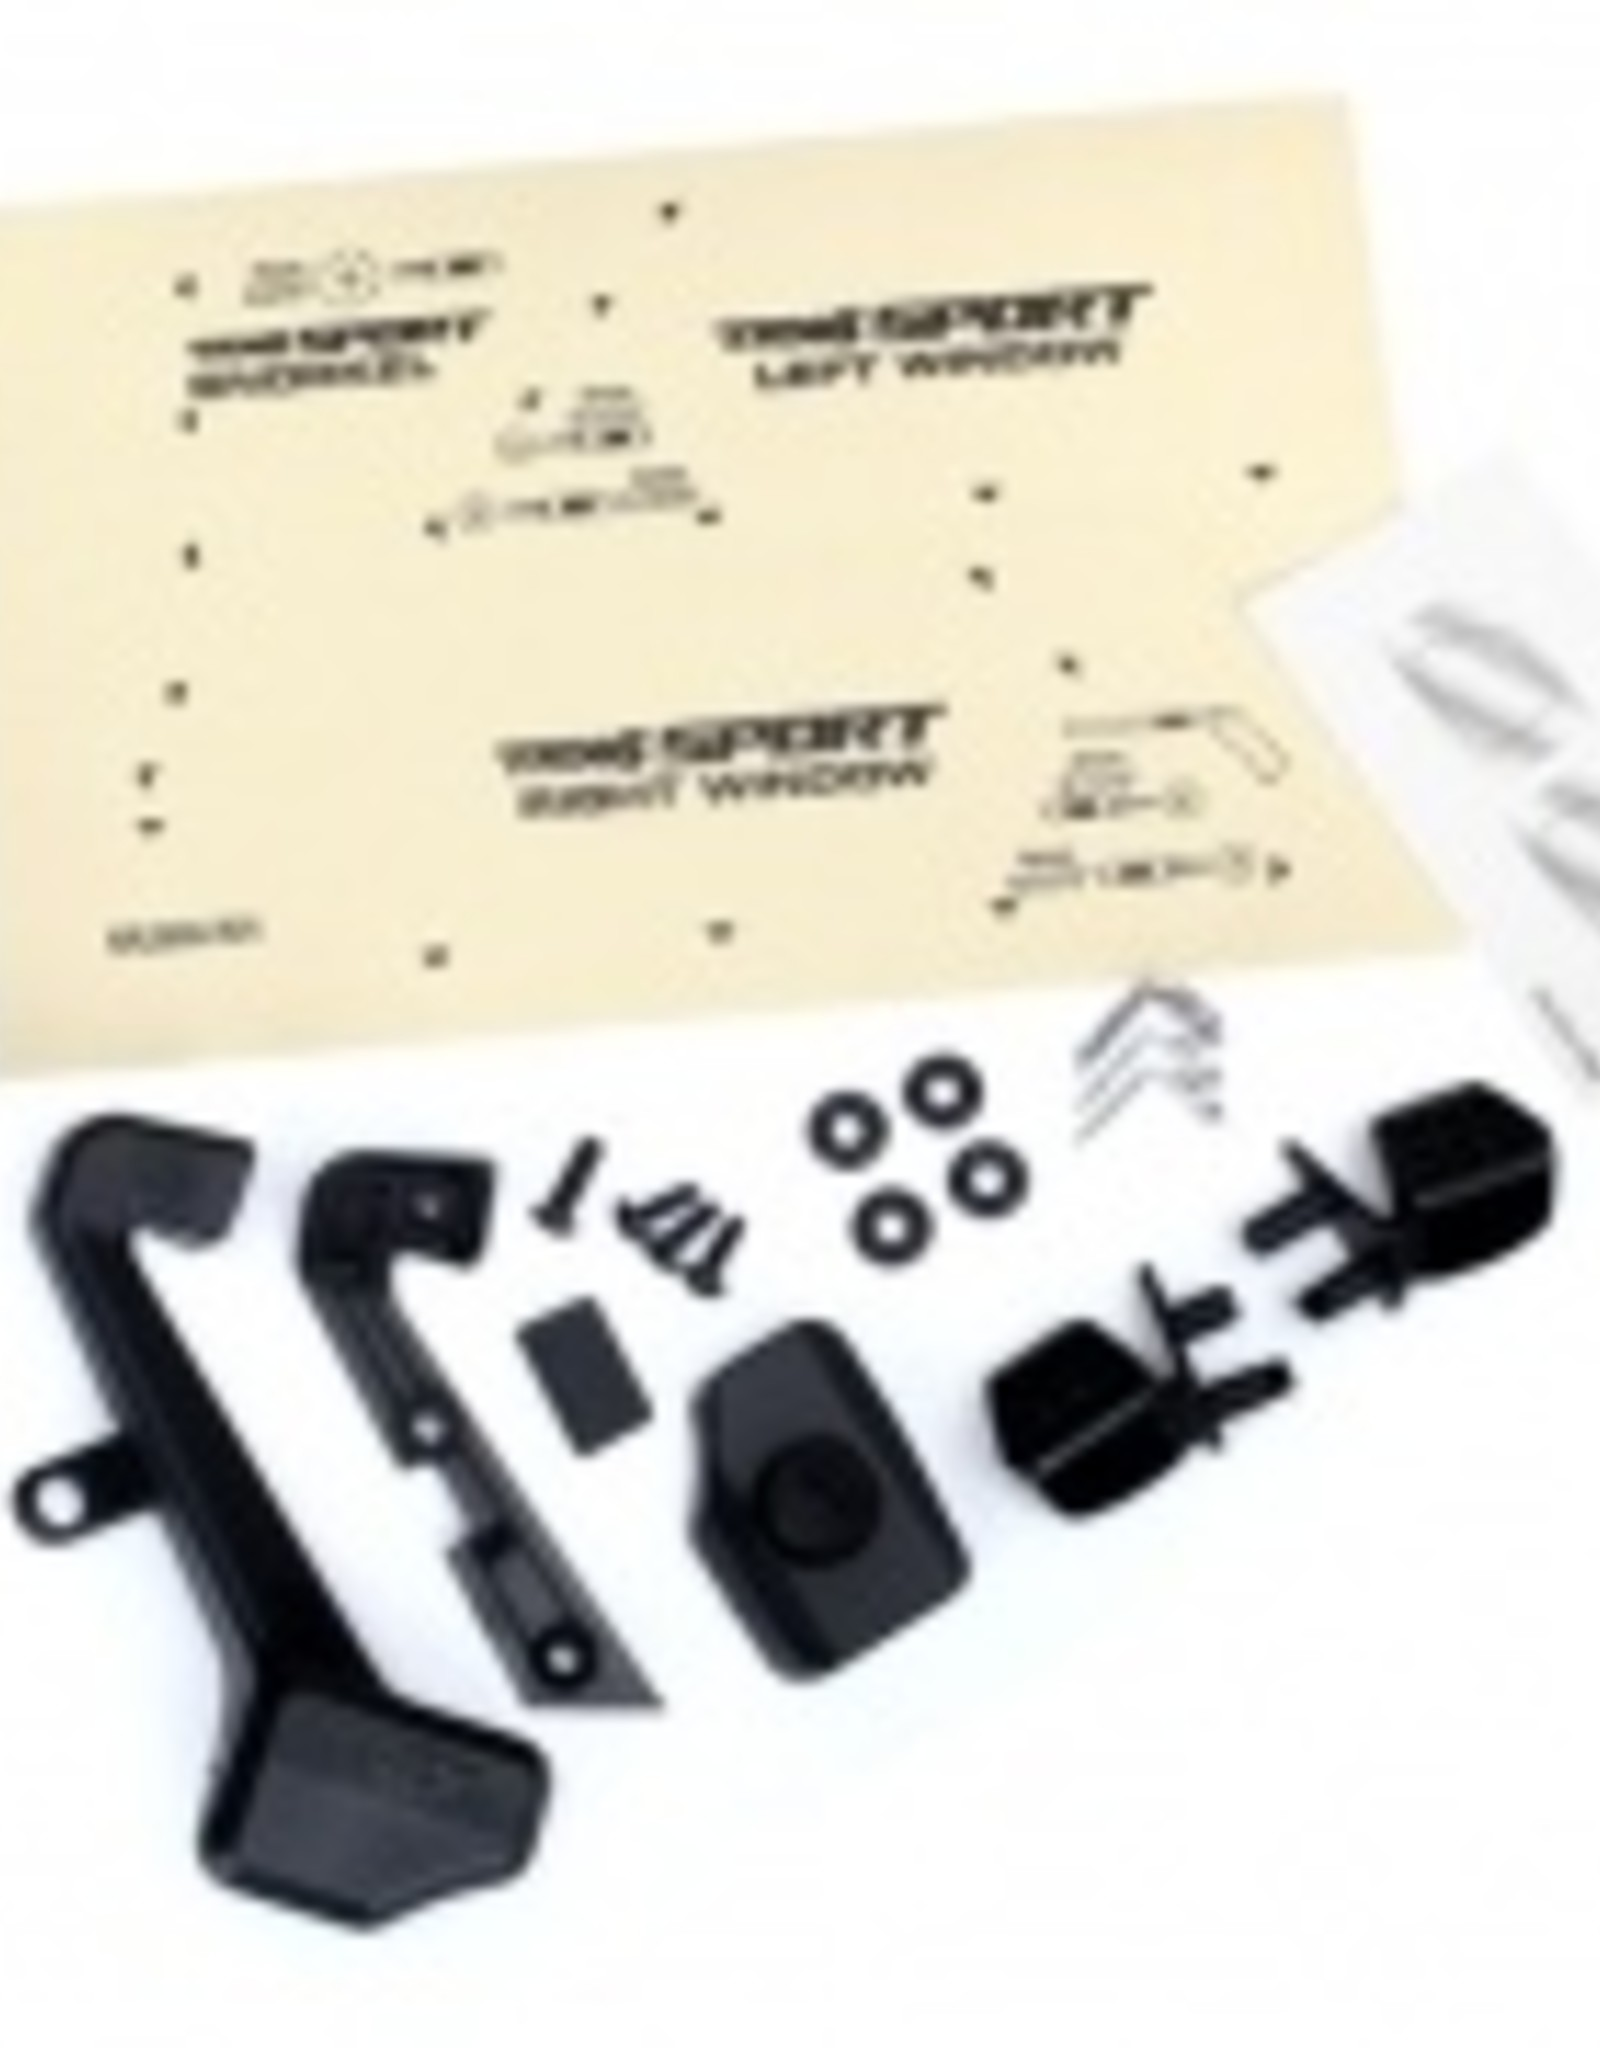 Traxxas Traxxas TRX Sport Mirrors, side (left & right)/ snorkel/ mounting hardware (fits #8111 or #8112 body)